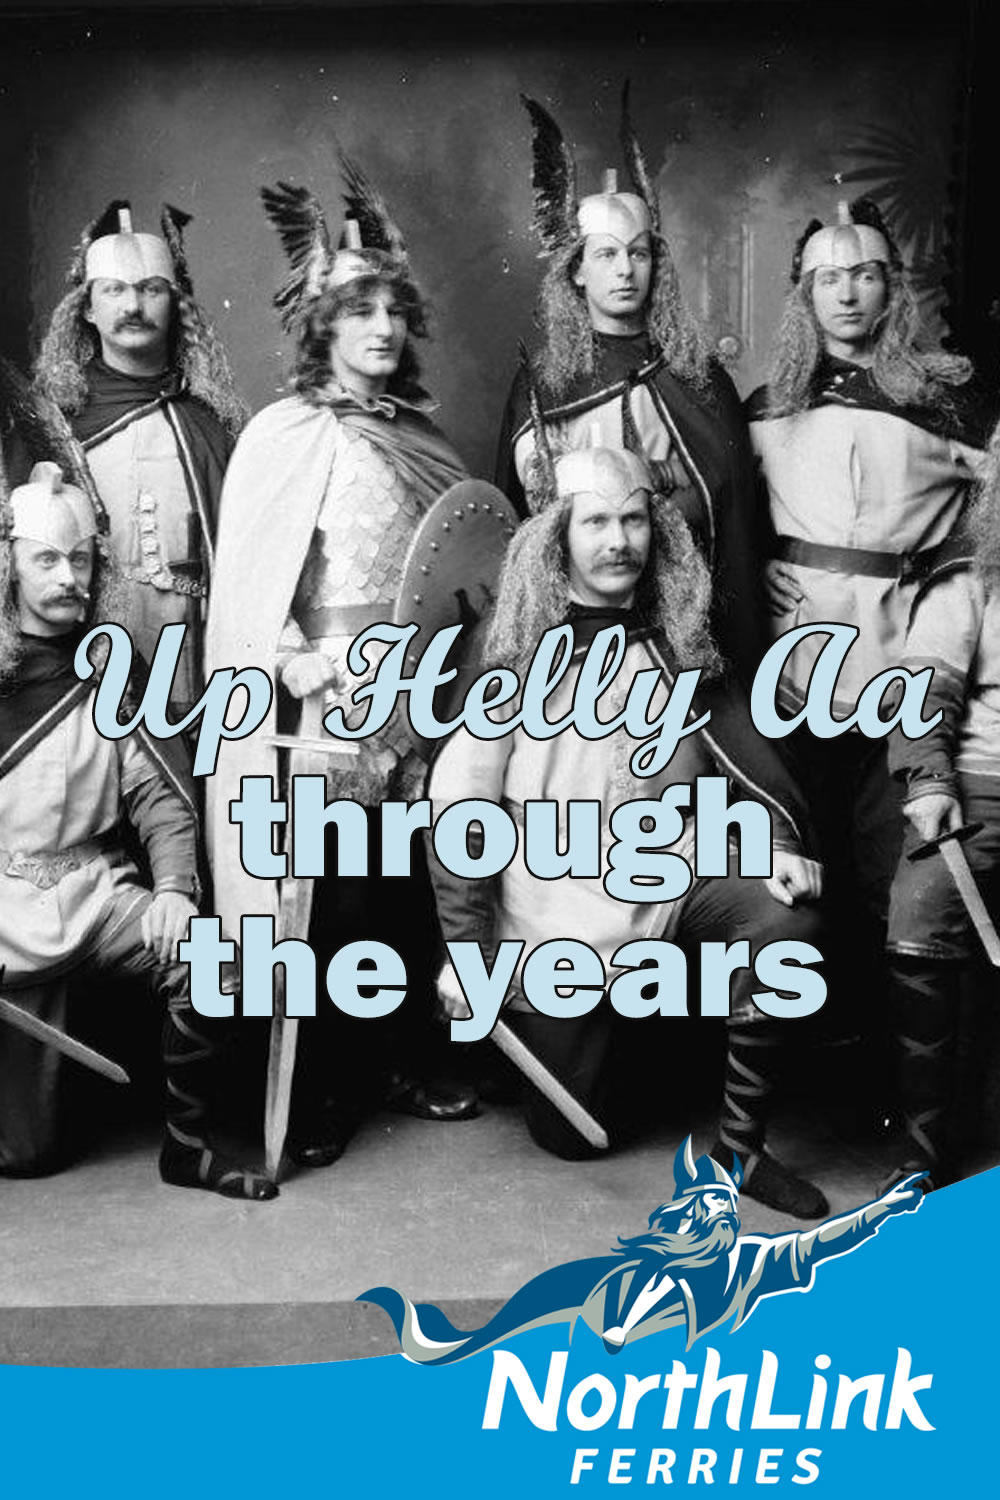 Up Helly Aa through the years